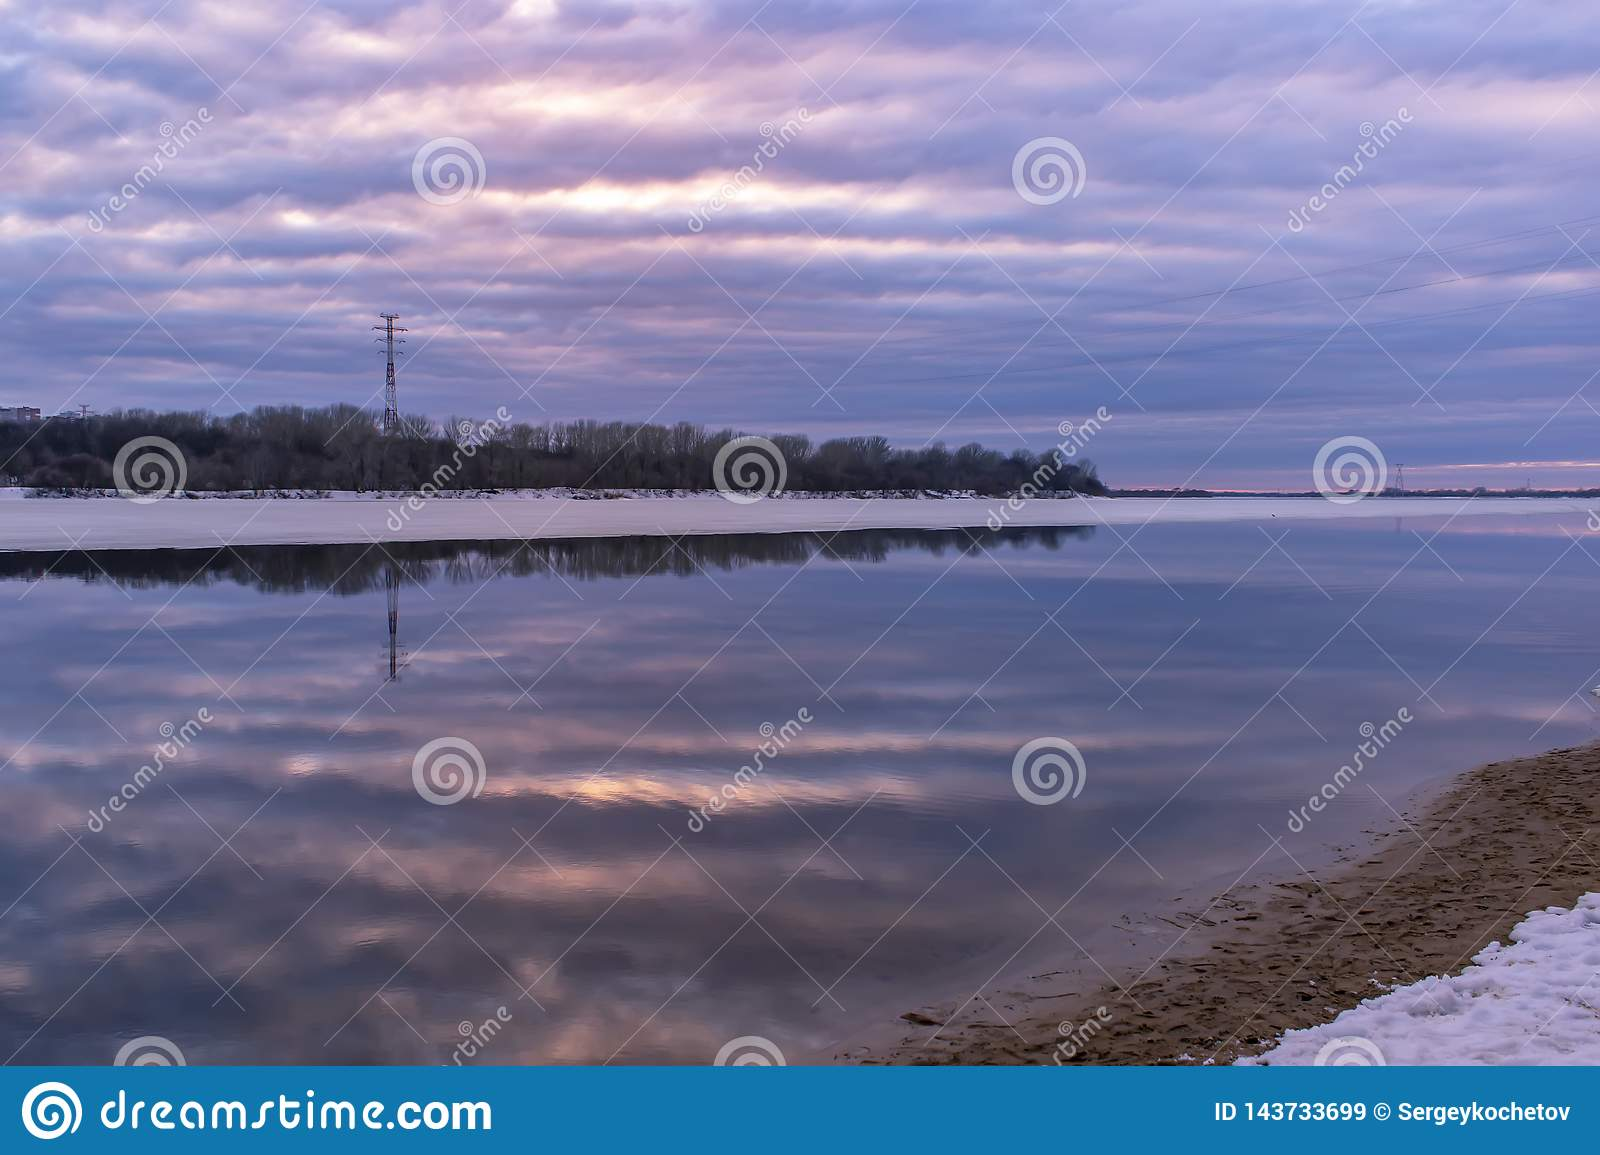 Beautiful reflection of the sky at sunset in the water on the river. Spring background